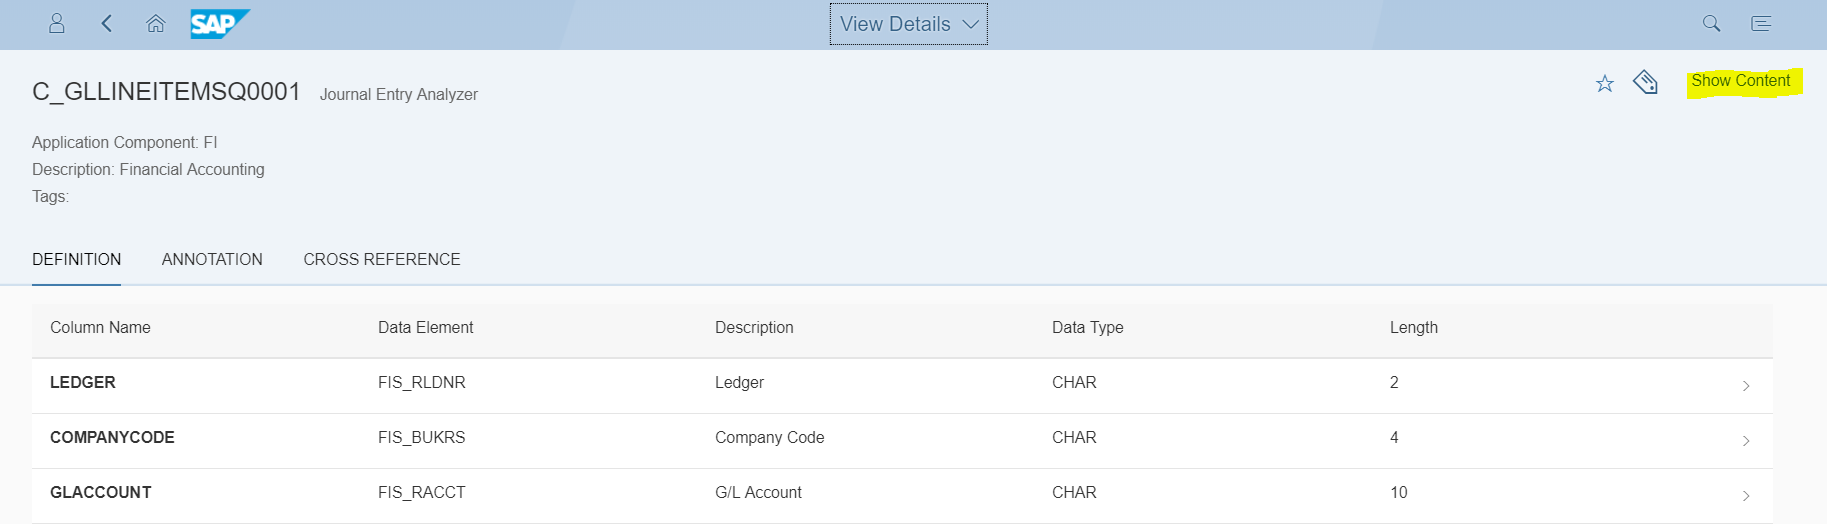 How to find a predefined Virtual Data Model in S/4HANA | SAP